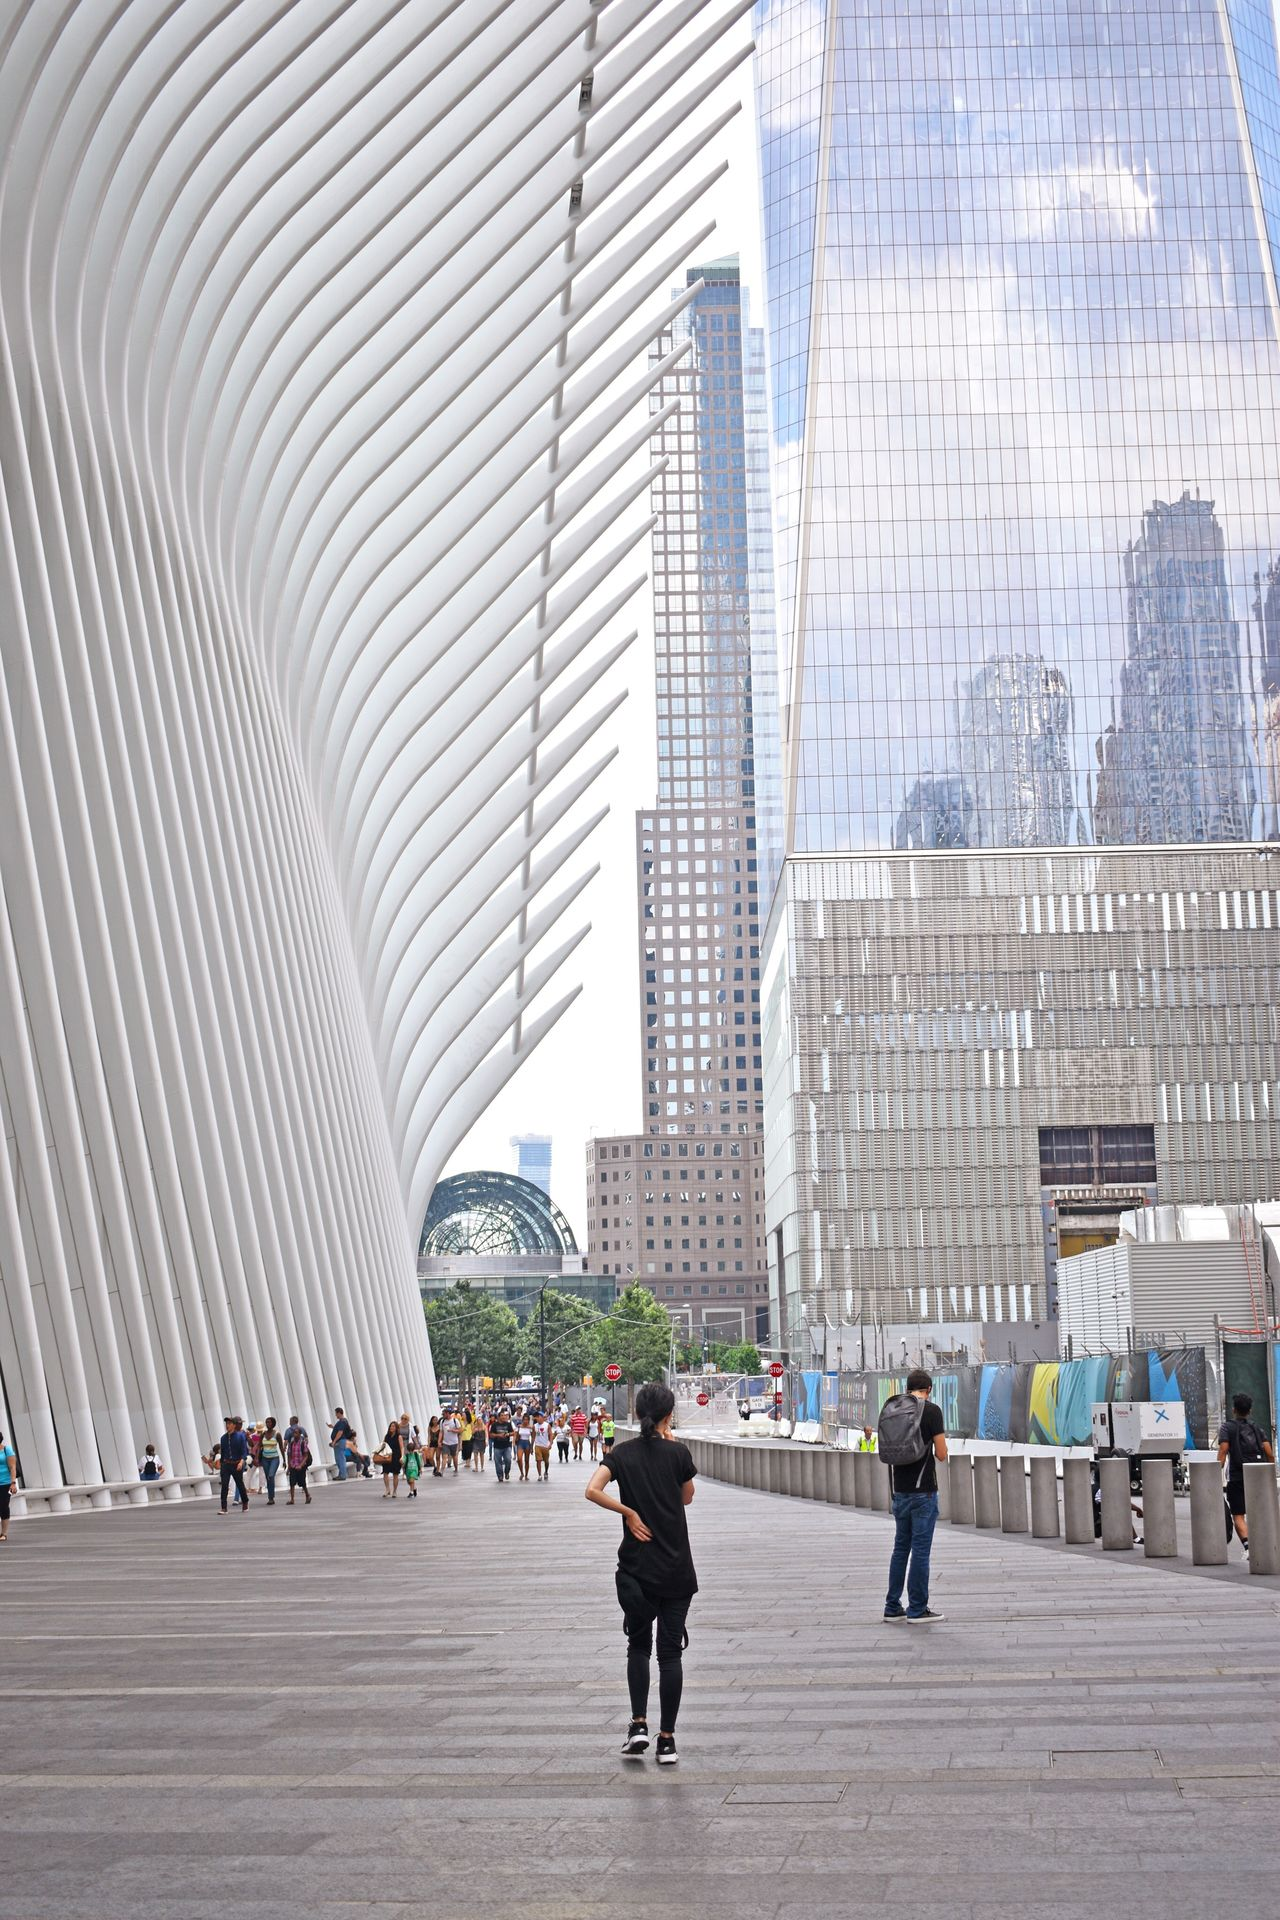 Architecture Skyscraper Modern City Built Structure Building Exterior Walking Day People Large Group Of People Real People Adults Only Urban Skyline Adult Futuristic Outdoors Cityscape Oculus Oculus NY WTC NYC NYC Street Photography NYC Photography Travel Destinations Architecture